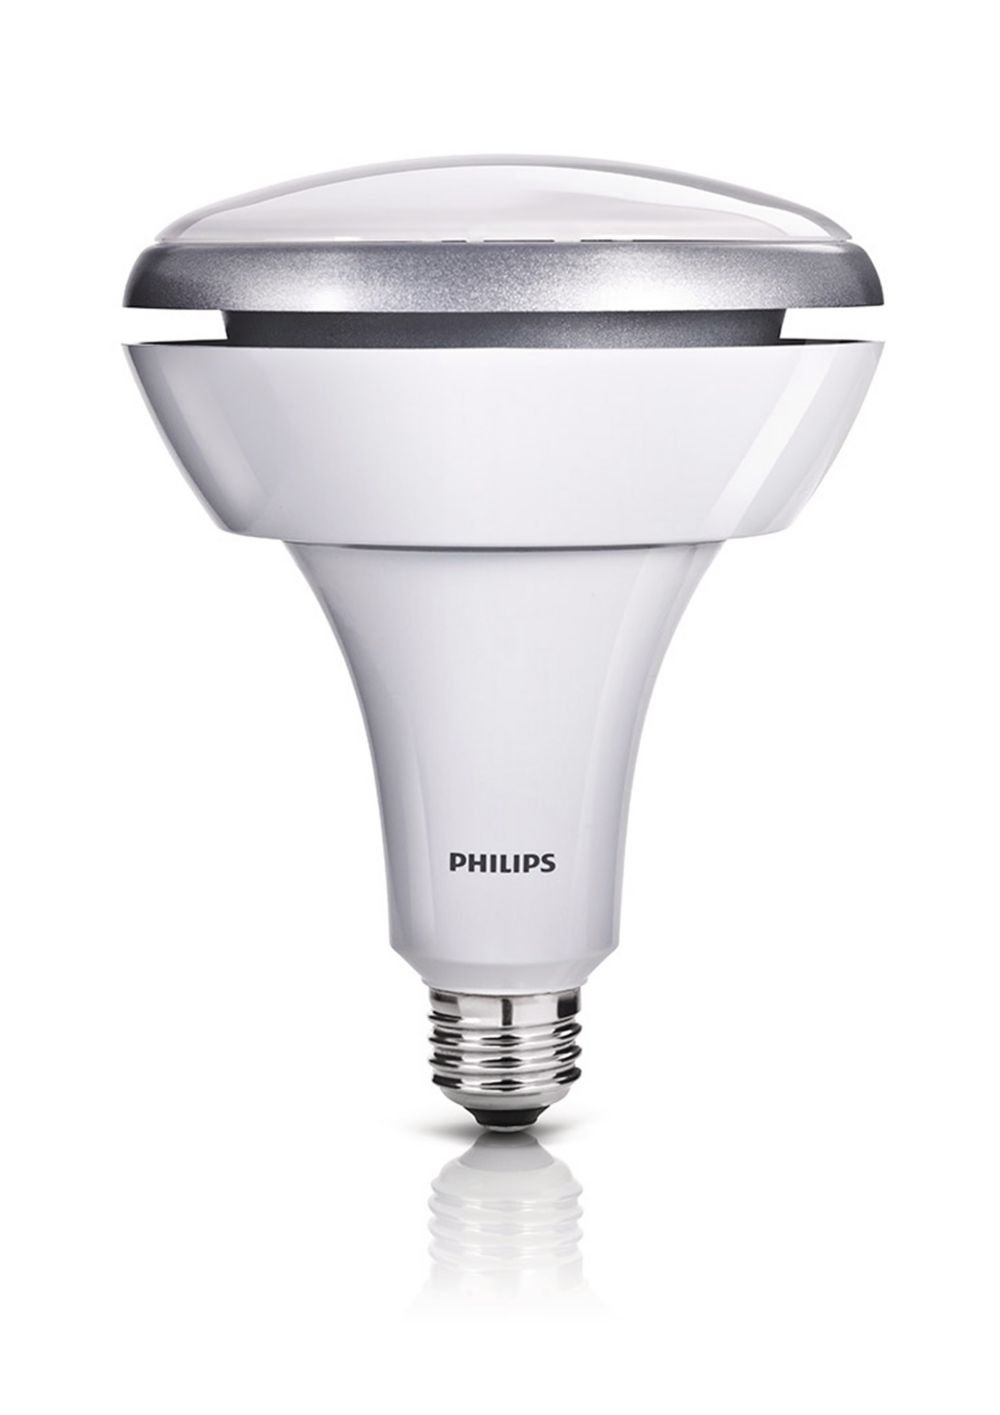 philips 423756 14 5 watt 75 watt br40 led indoor flood light bulb dimmable. Black Bedroom Furniture Sets. Home Design Ideas